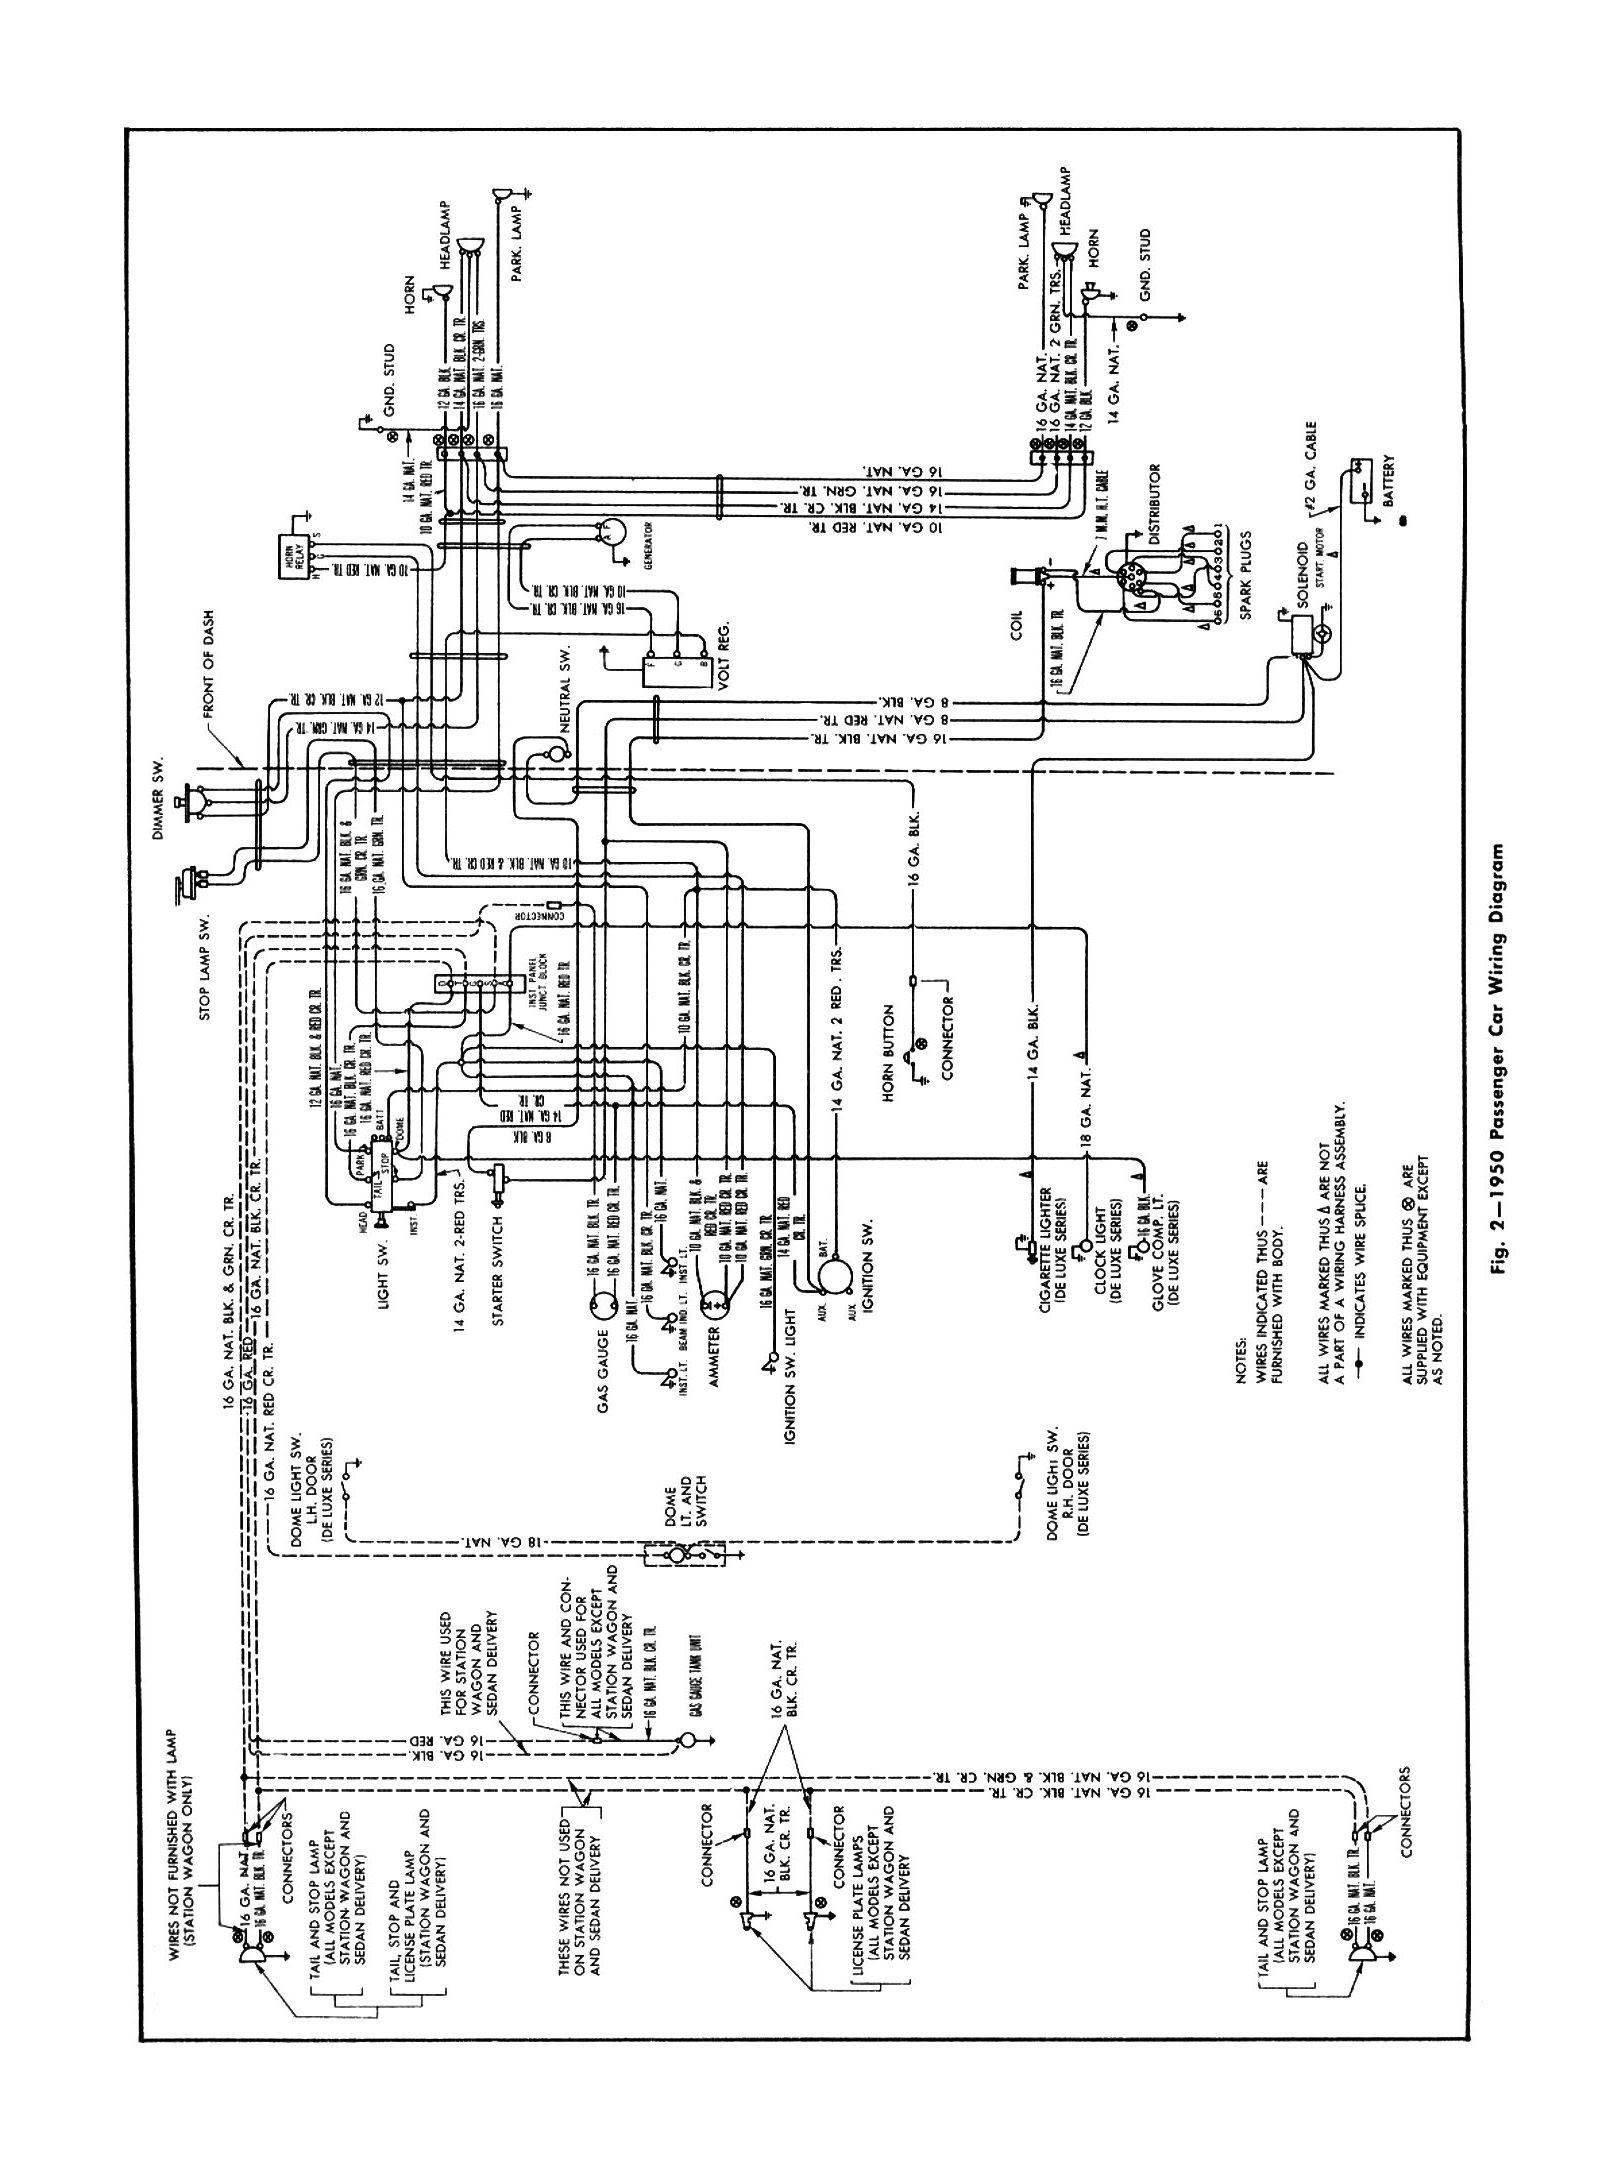 1953 Chevy Truck Turn Signal Wiring Diagram Wiring Diagram Productive Productive Zaafran It